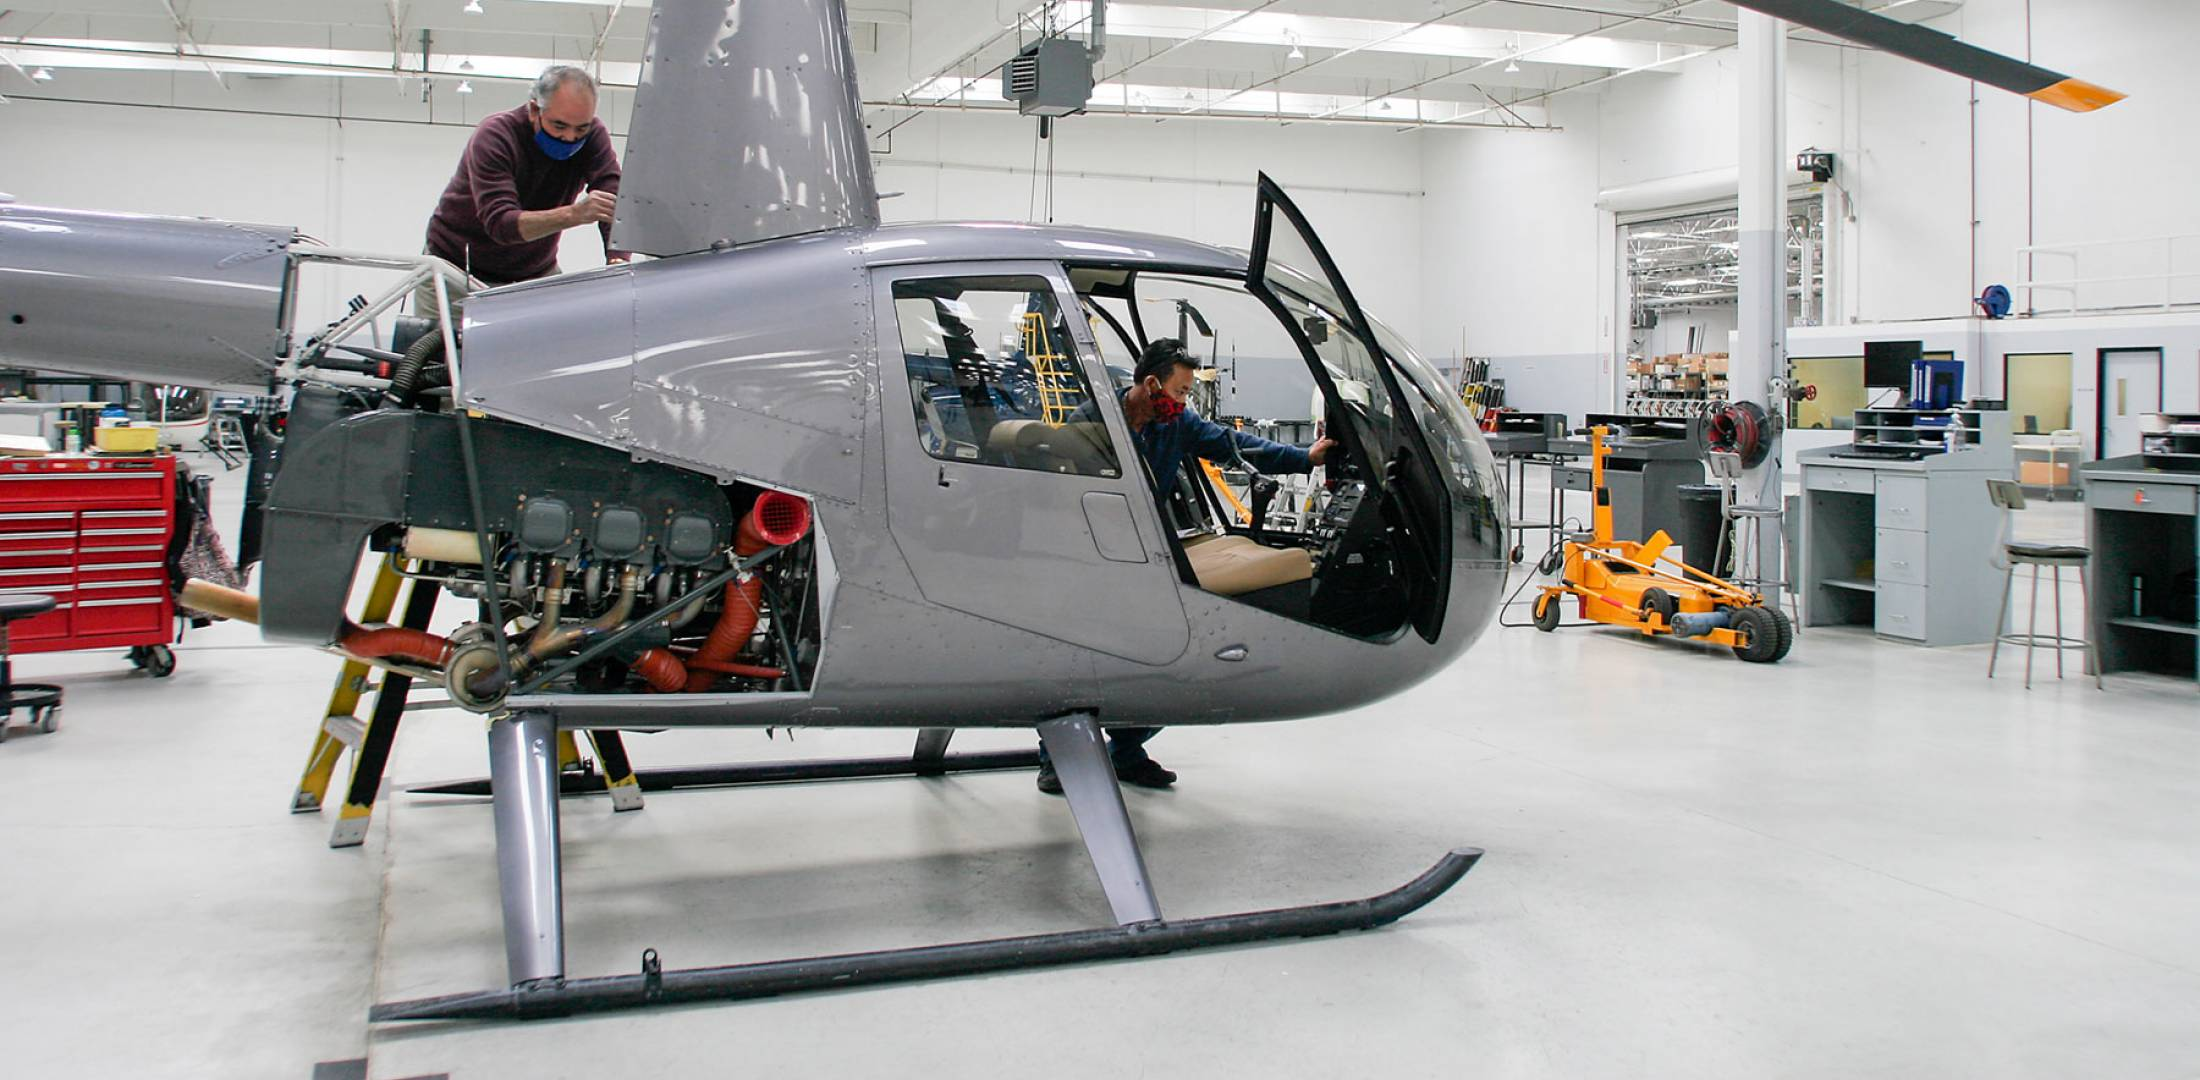 Robinson Helicopters workers in masks on production line